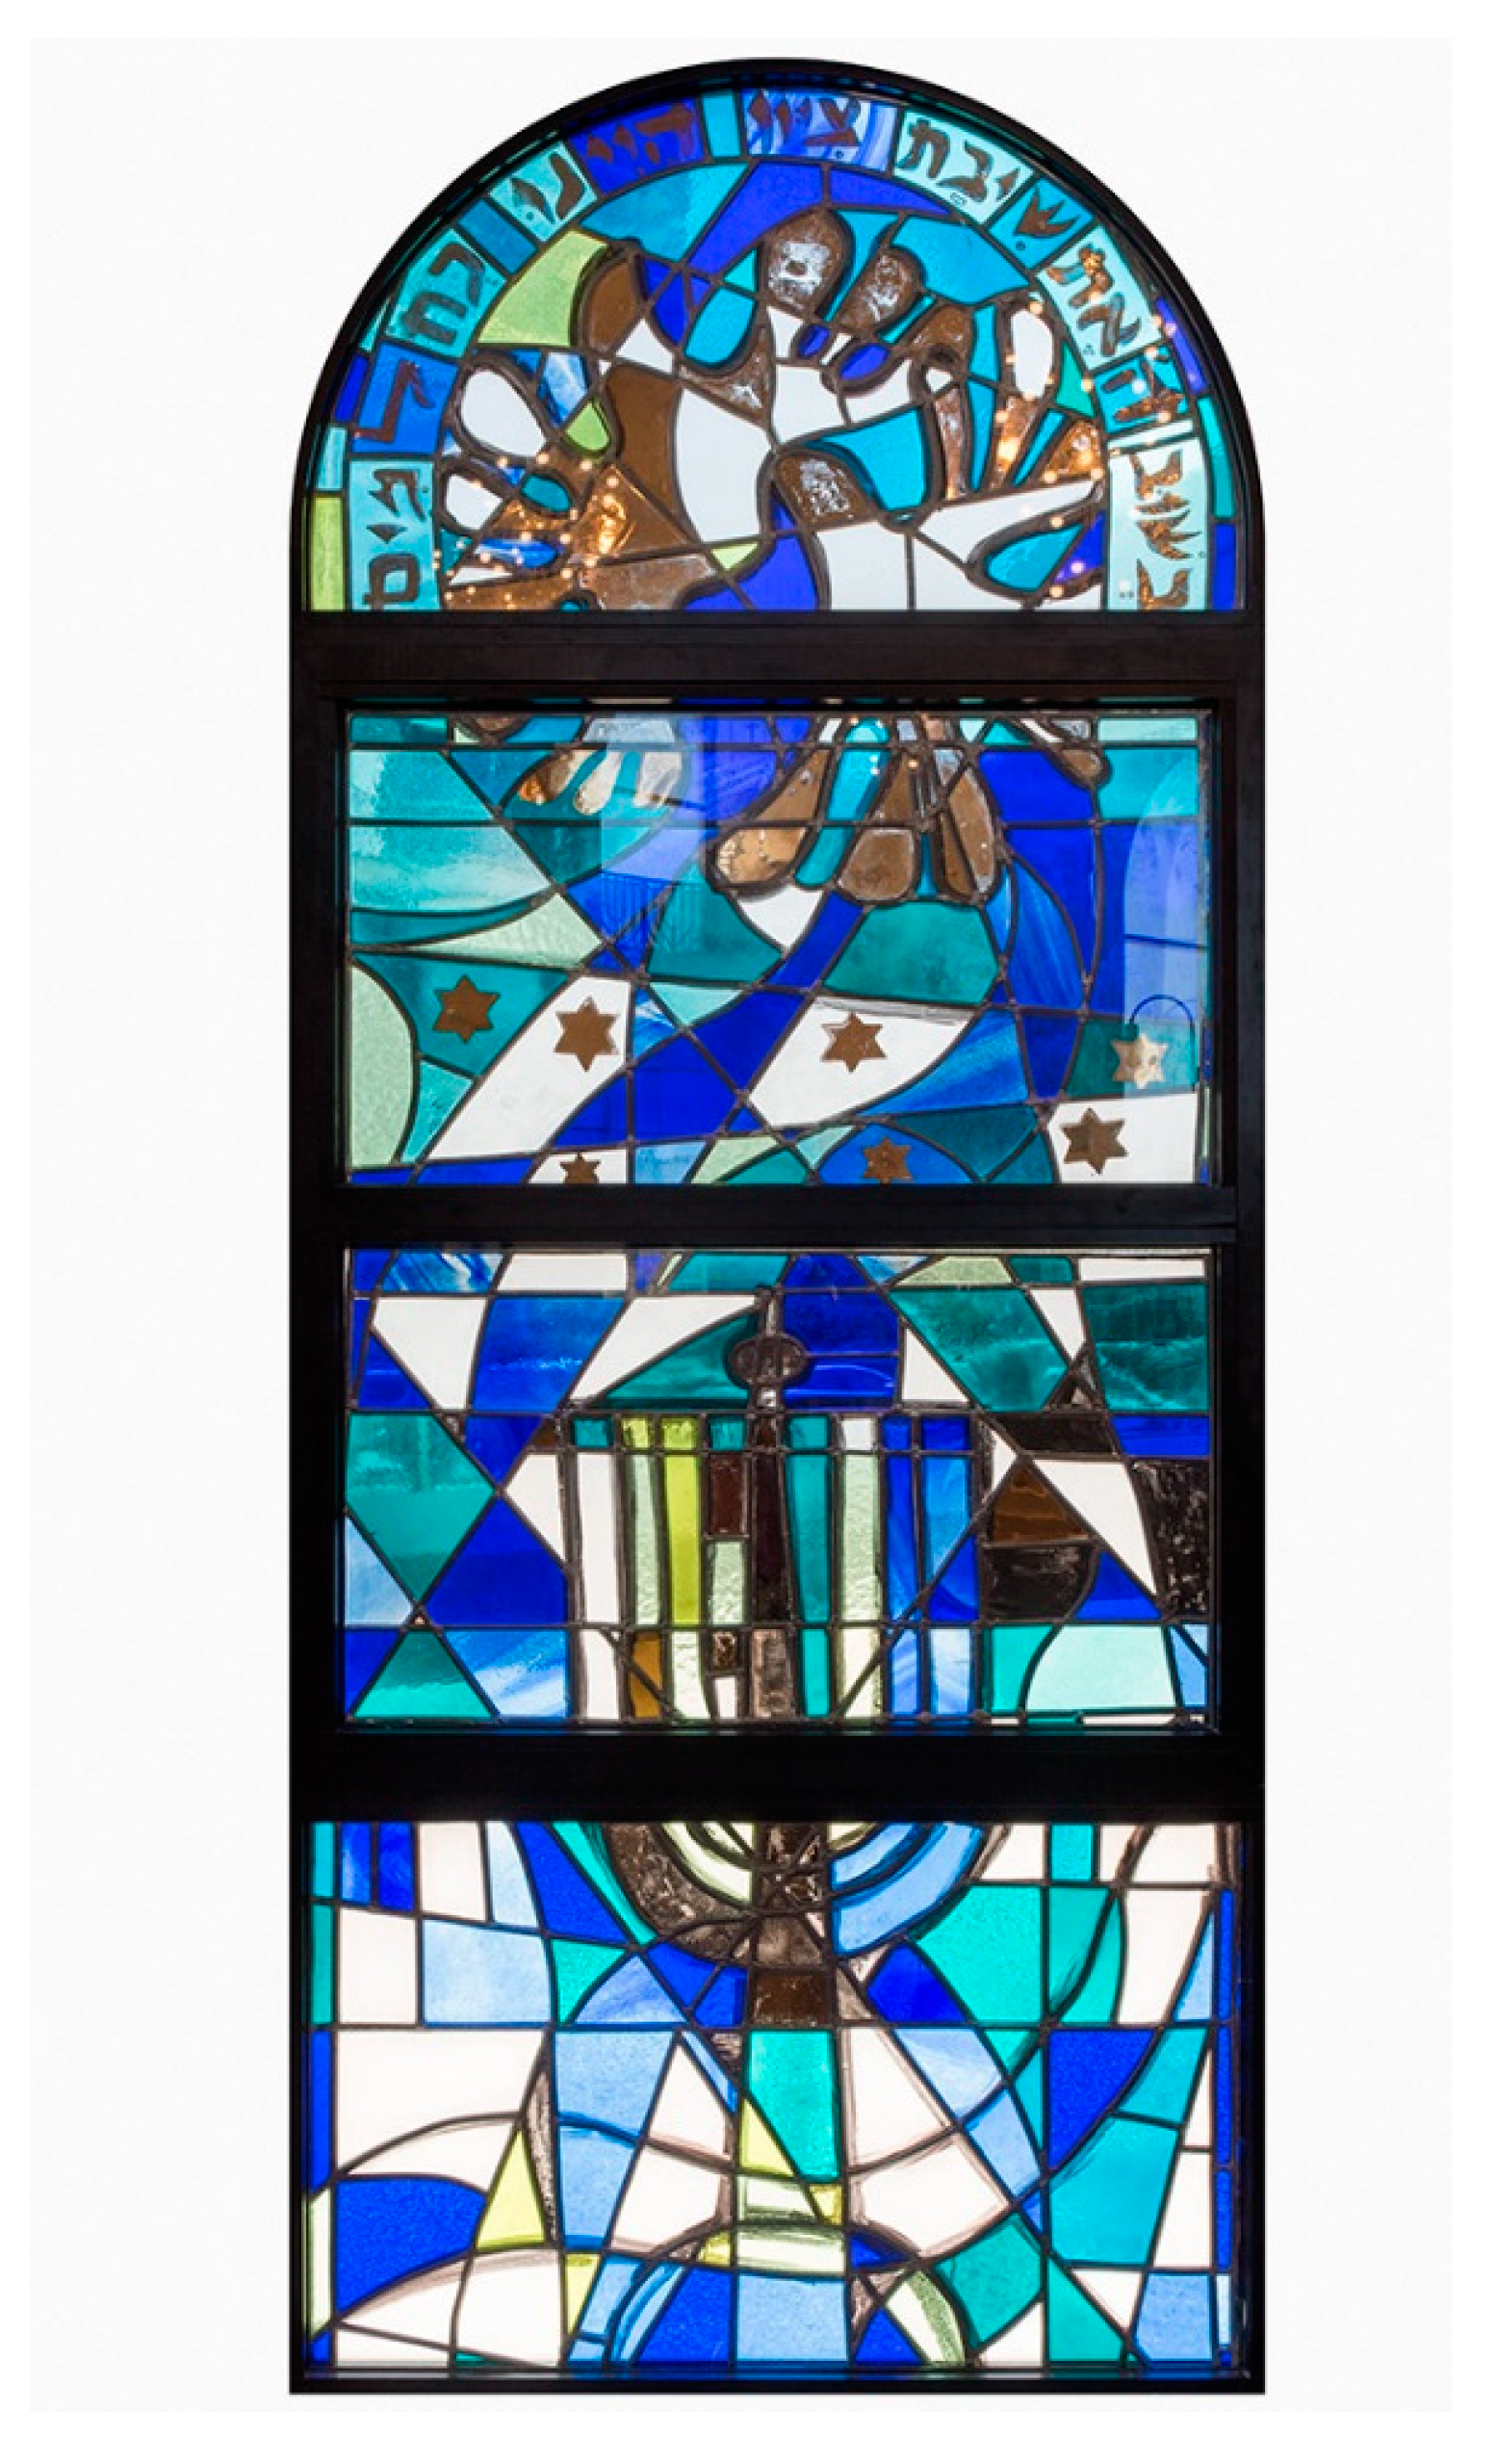 privacy decorative glass the window people.htm arts free full text exceptionally jewish israeli synagogue  israeli synagogue